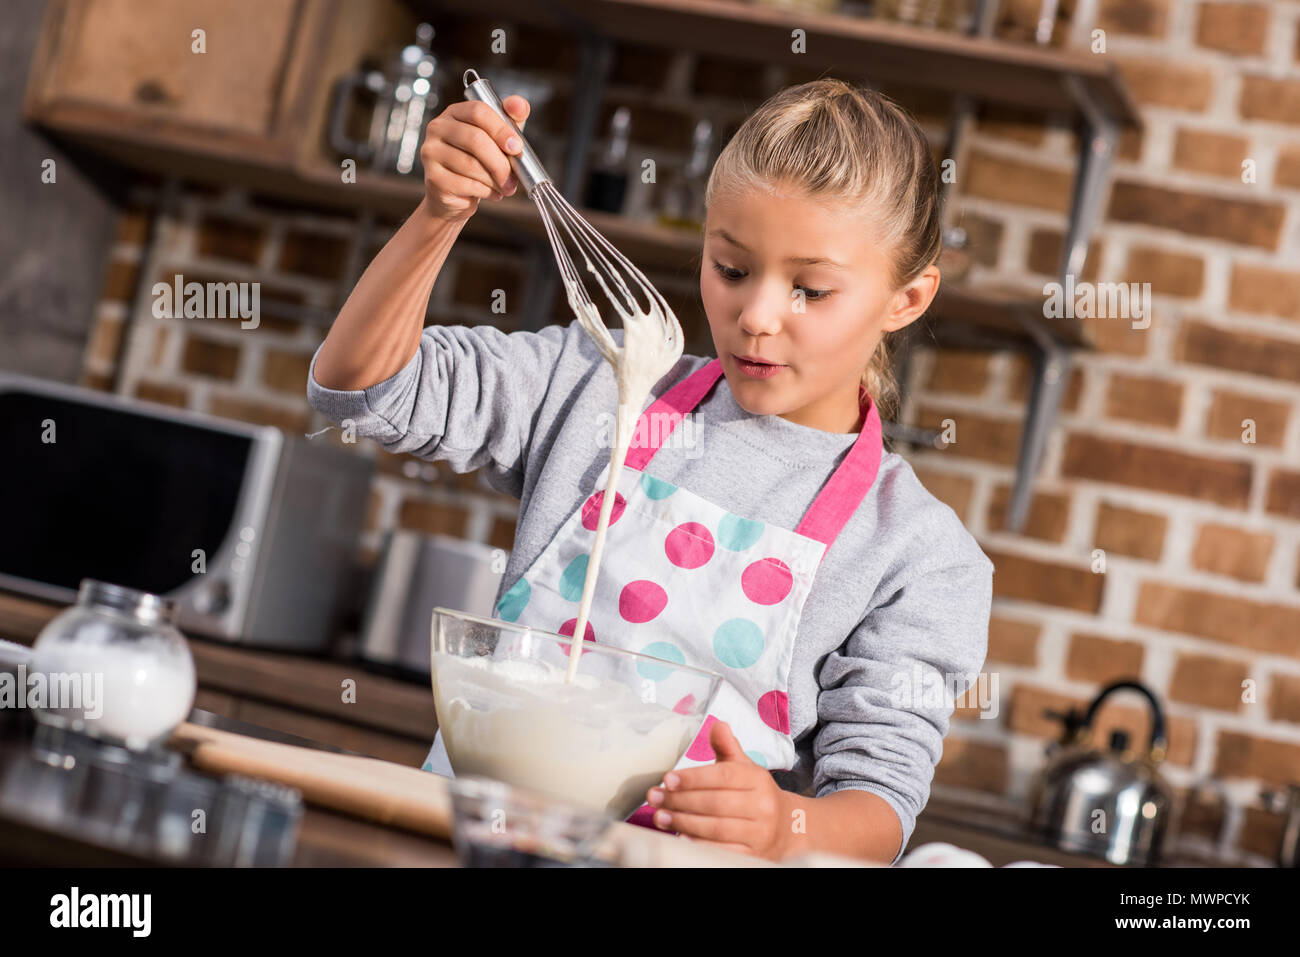 portrait of preteen girl in apron with whisk cooking alone at home - Stock Image